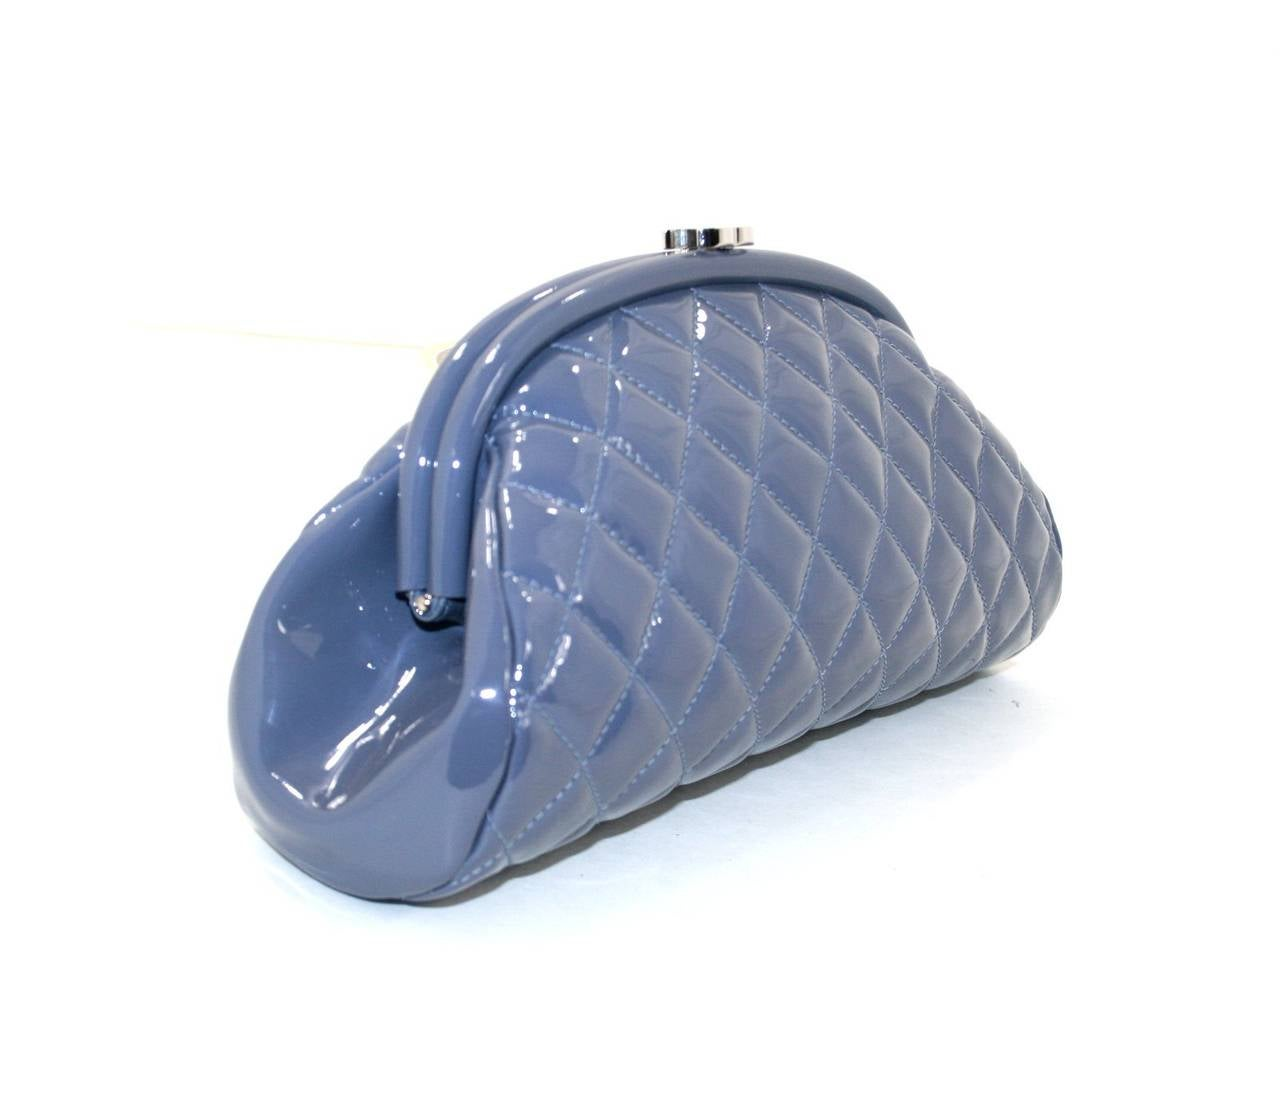 Chanel Lavender Timeless Clutch in Patent Leather 2